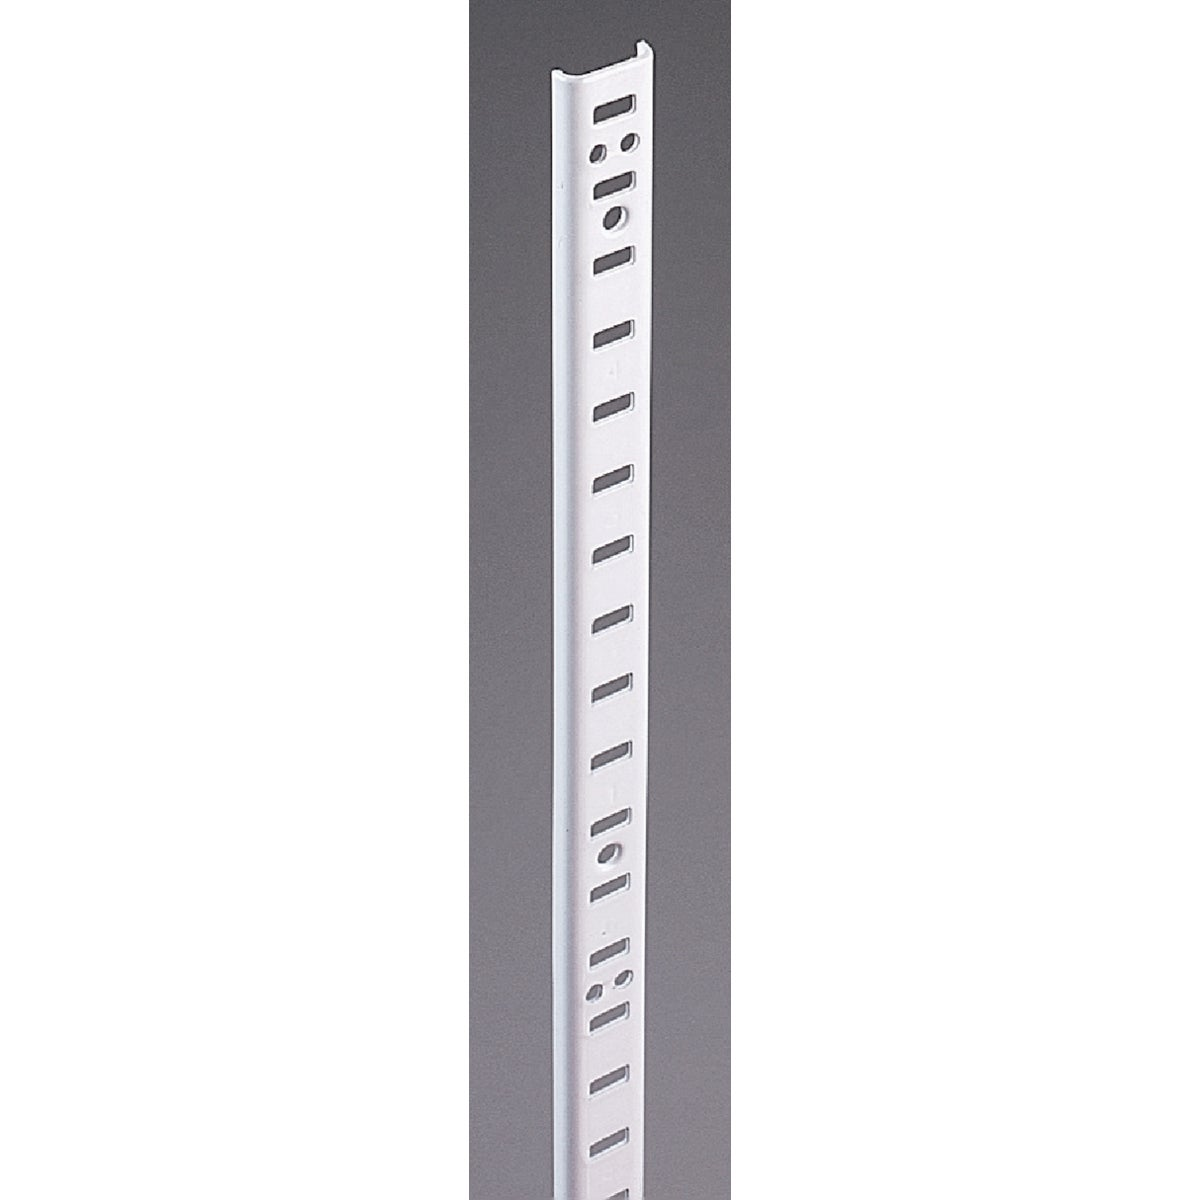 "ZN 60"" PILASTER STANDARD - PK255ZC 60 by Knape & Vogt Mfg Co"